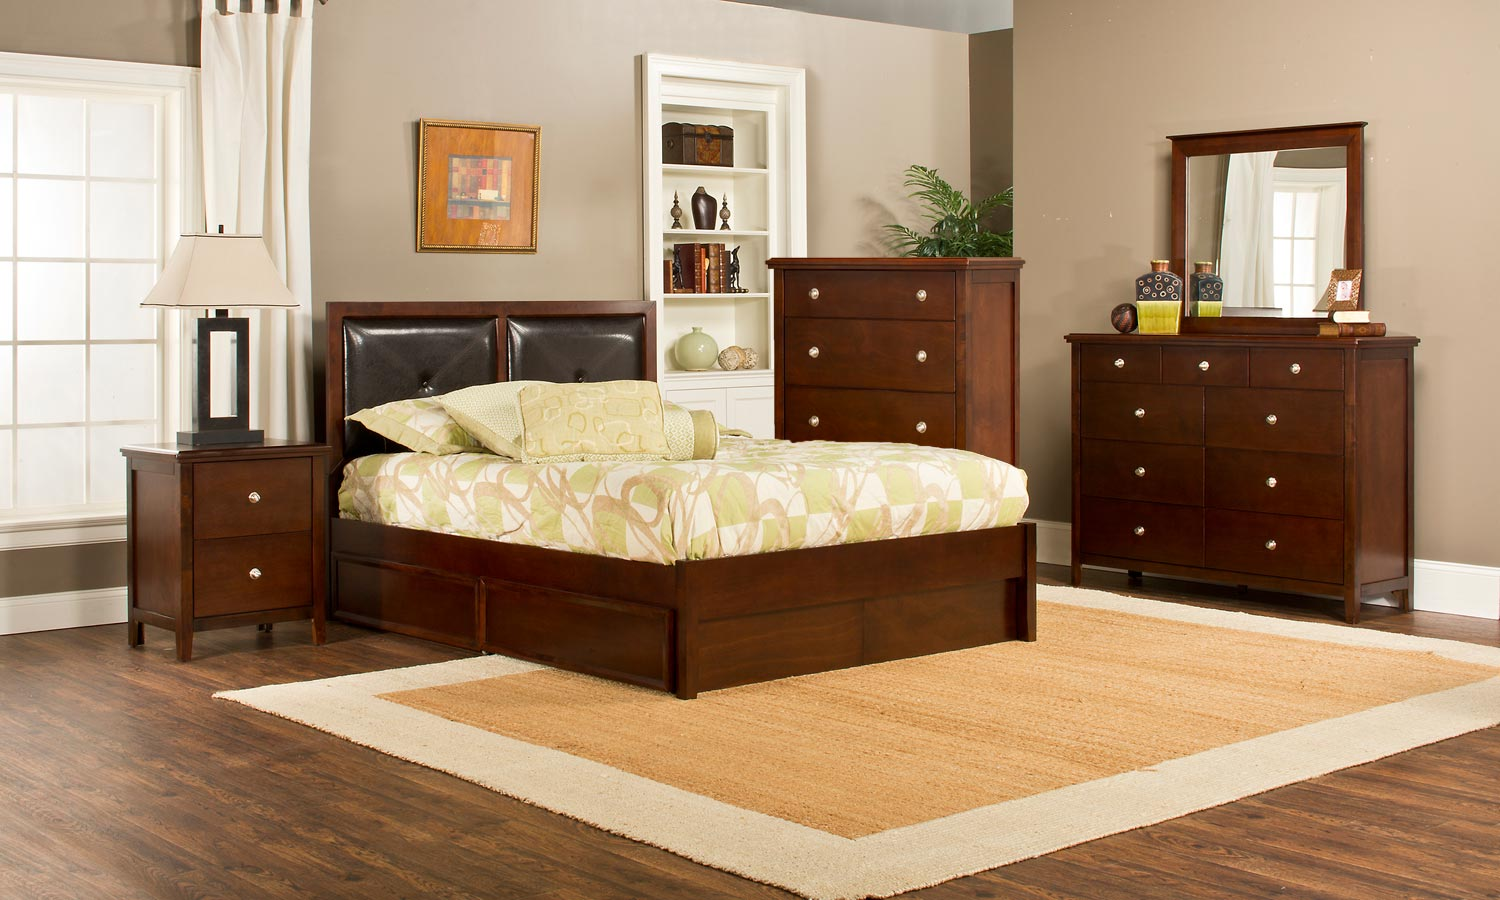 Hillsdale Metro Martin Storage 5-Piece Bedroom Collection - Cherry